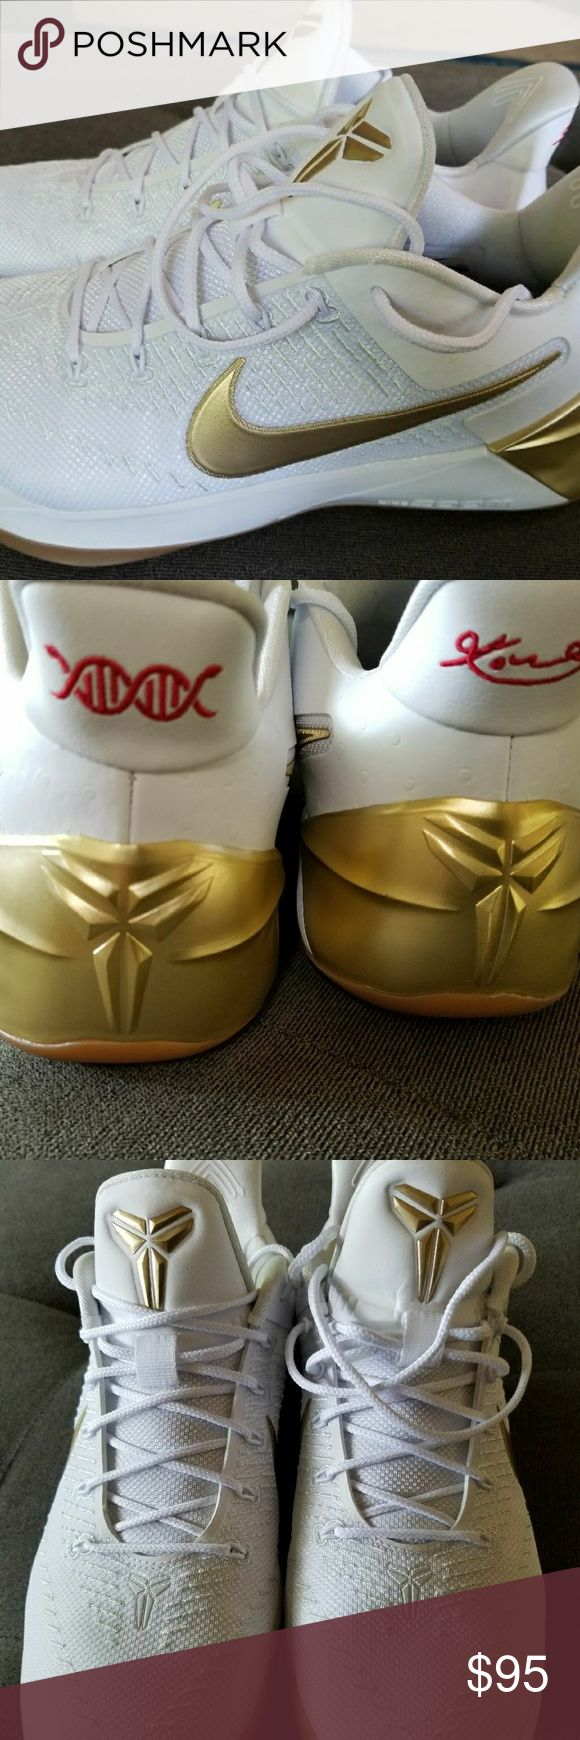 💣💥KOBE BRYANT A.D. White/Gold Edition💥With Box Really sick looking Kobe's. Worn maybe 5 times, twice on the court. Scuffed a little on the outside toe area (shown in pics). Really high end look and feel. $160 brand new and hard to find. Nike Shoes Sneakers